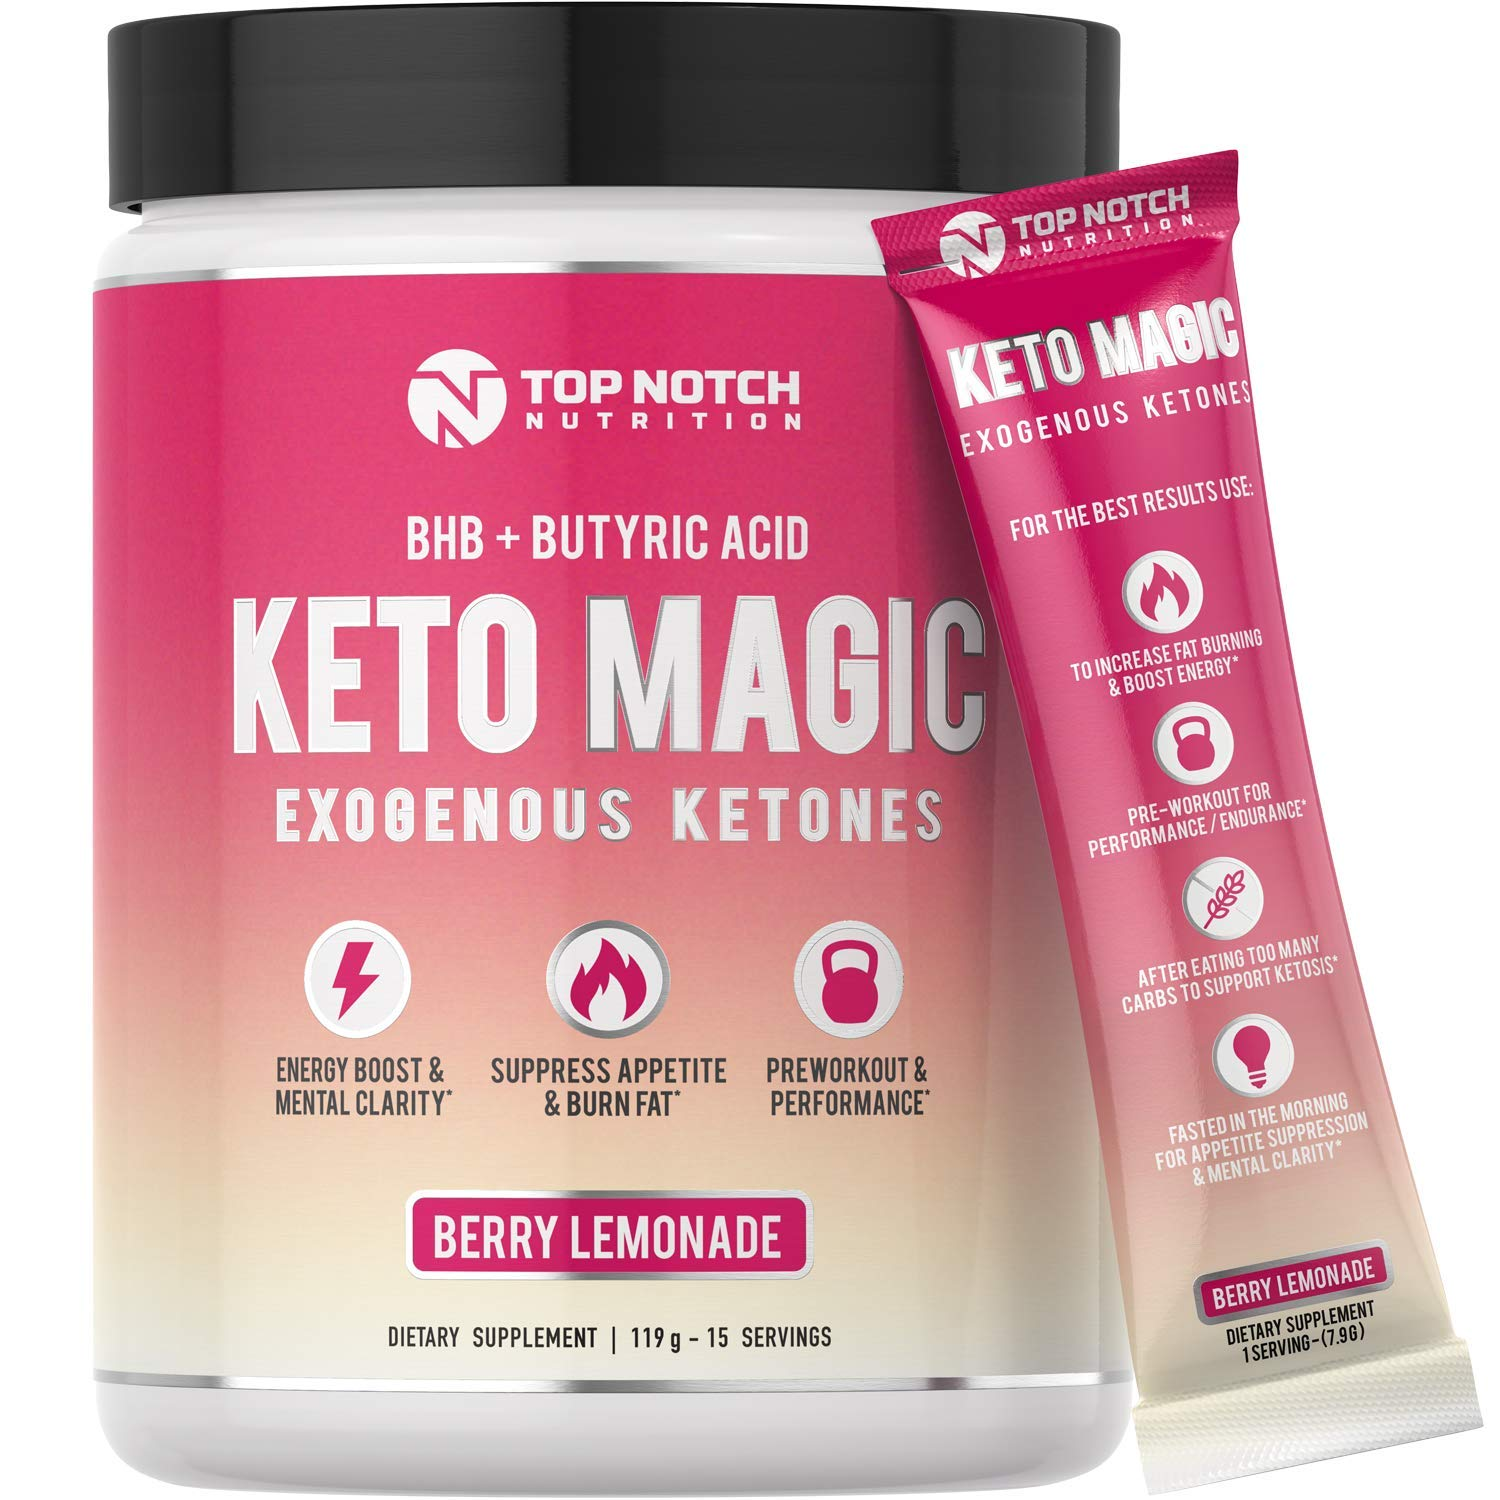 Keto Magic Exogenous Ketone Supplement Powered by Patent-Pending KETOBA (BHB Salts+BA) | Achieve Ketosis & Ketogenesis w/Easy On-The-Go Single Serving Pouches. Amazing Energy, Stamina & Focus. (15) by TOP NOTCH NUTRITION